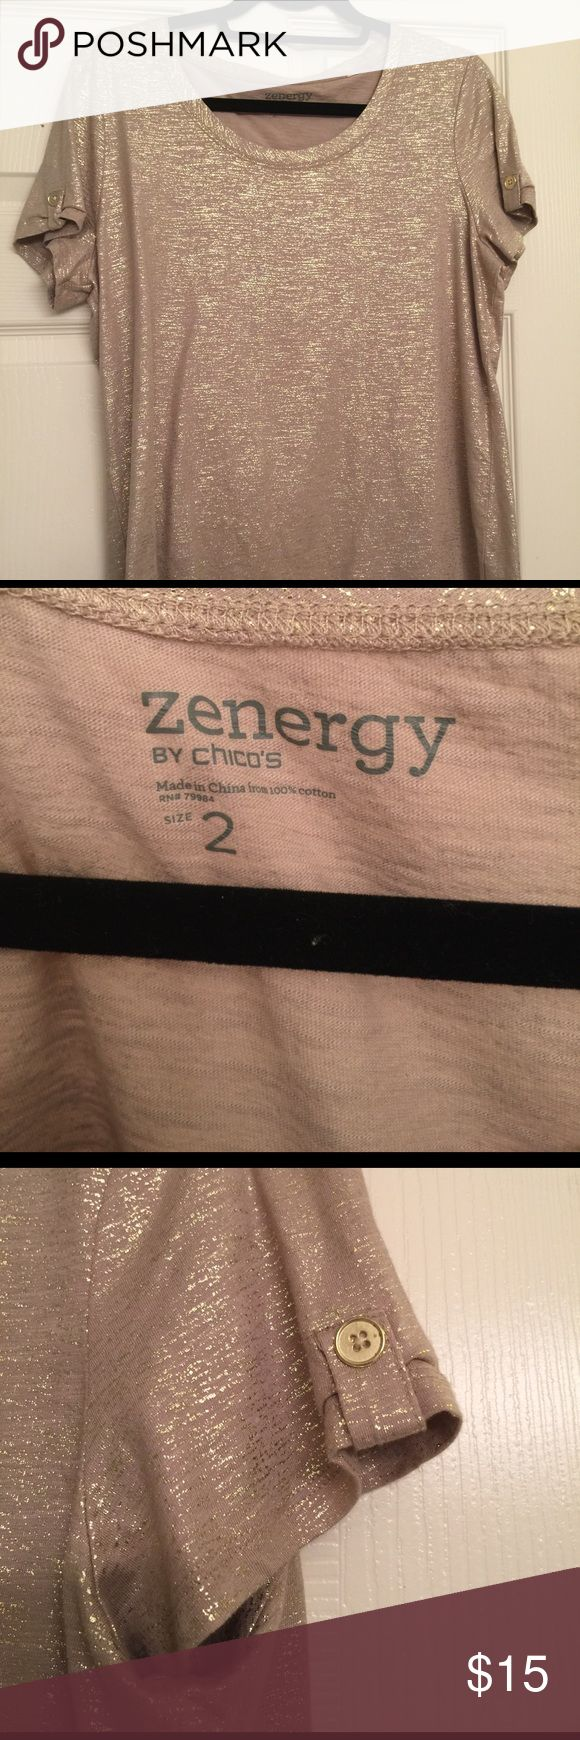 Zenergy by Chico's Gold T Shirt This is new without tags t shirt. It is labeled a size 2 in Chico's sizes, which I think equates to a 10. It has small gold button tab details in the sleeves and is 100% cotton. Gorgeous color. It was a gift but it is a bit too big on me. I am a size 8 and I think it is more a size 10. Chico's Tops Tees - Short Sleeve